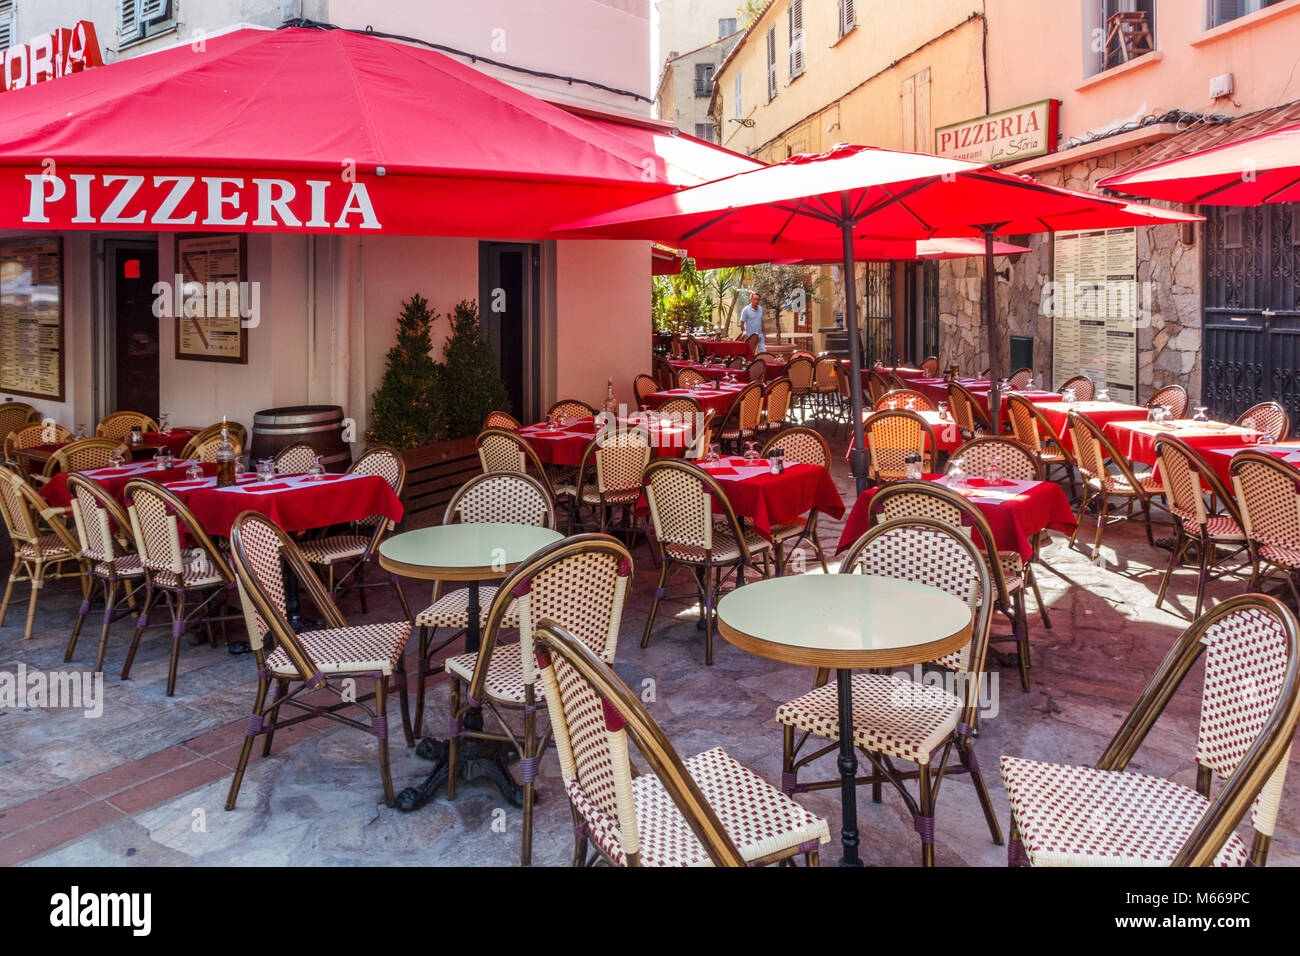 Tables and chairs outside a pizzeria, Ajaccio, COrsica, France - Stock Image